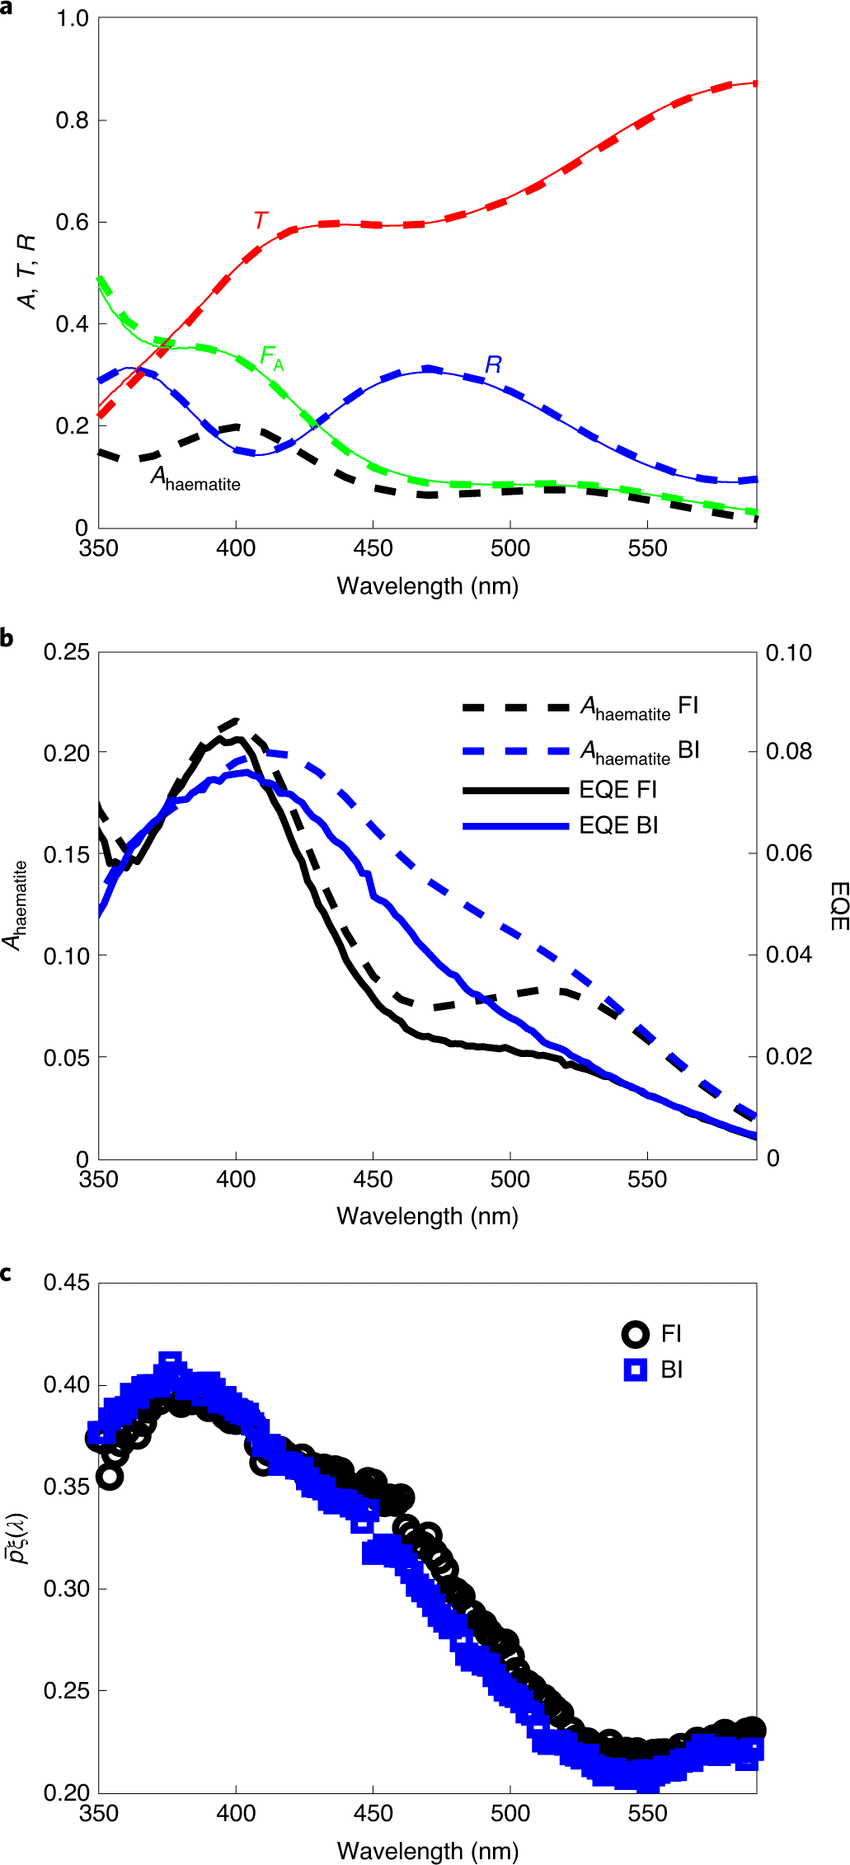 Extraction of the photogeneration yield spectrum from optical and photoelectrochemical EQE measurements of a 7-nm-thick haematite film a, Measured (solid line) and calculated (dashed line) transmittance (T), reflectance (R) and absorptance (FA) spectra in front illumination in air. The calculated absorptance in the haematite layer only (Ahaematite) is also shown. b, The calculated haematite absorptance spectra in water and EQE spectra measured at 1.6VRHE in front and back illumination (FI and BI, respectively). c, The extracted p¯ξλ\documentclass[12pt]{minimal} \usepackage{amsmath} \usepackage{wasysym} \usepackage{amsfonts} \usepackage{amssymb} \usepackage{amsbsy} \usepackage{mathrsfs} \usepackage{upgreek} \setlength{\oddsidemargin}{-69pt} \begin{document}$$\bar p \xi \left( {\it{\lambda }} \right)$$\end{document} spectra for front (black) and back (blue) illumination.